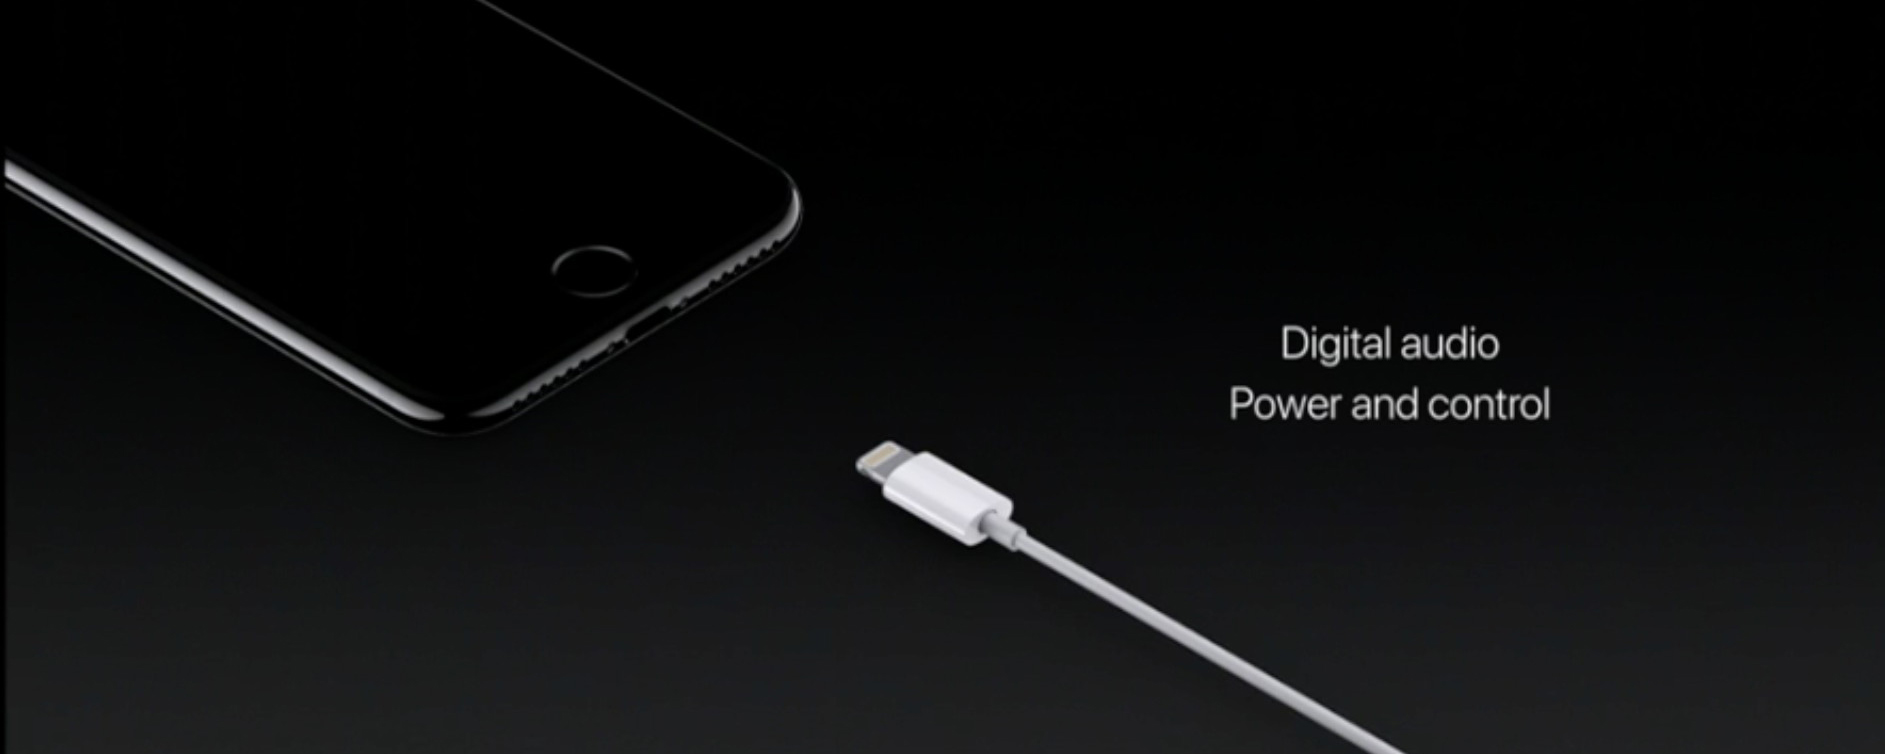 Belkin Has an Answer for How to Charge Your iPhone While Using Lightning Headphones